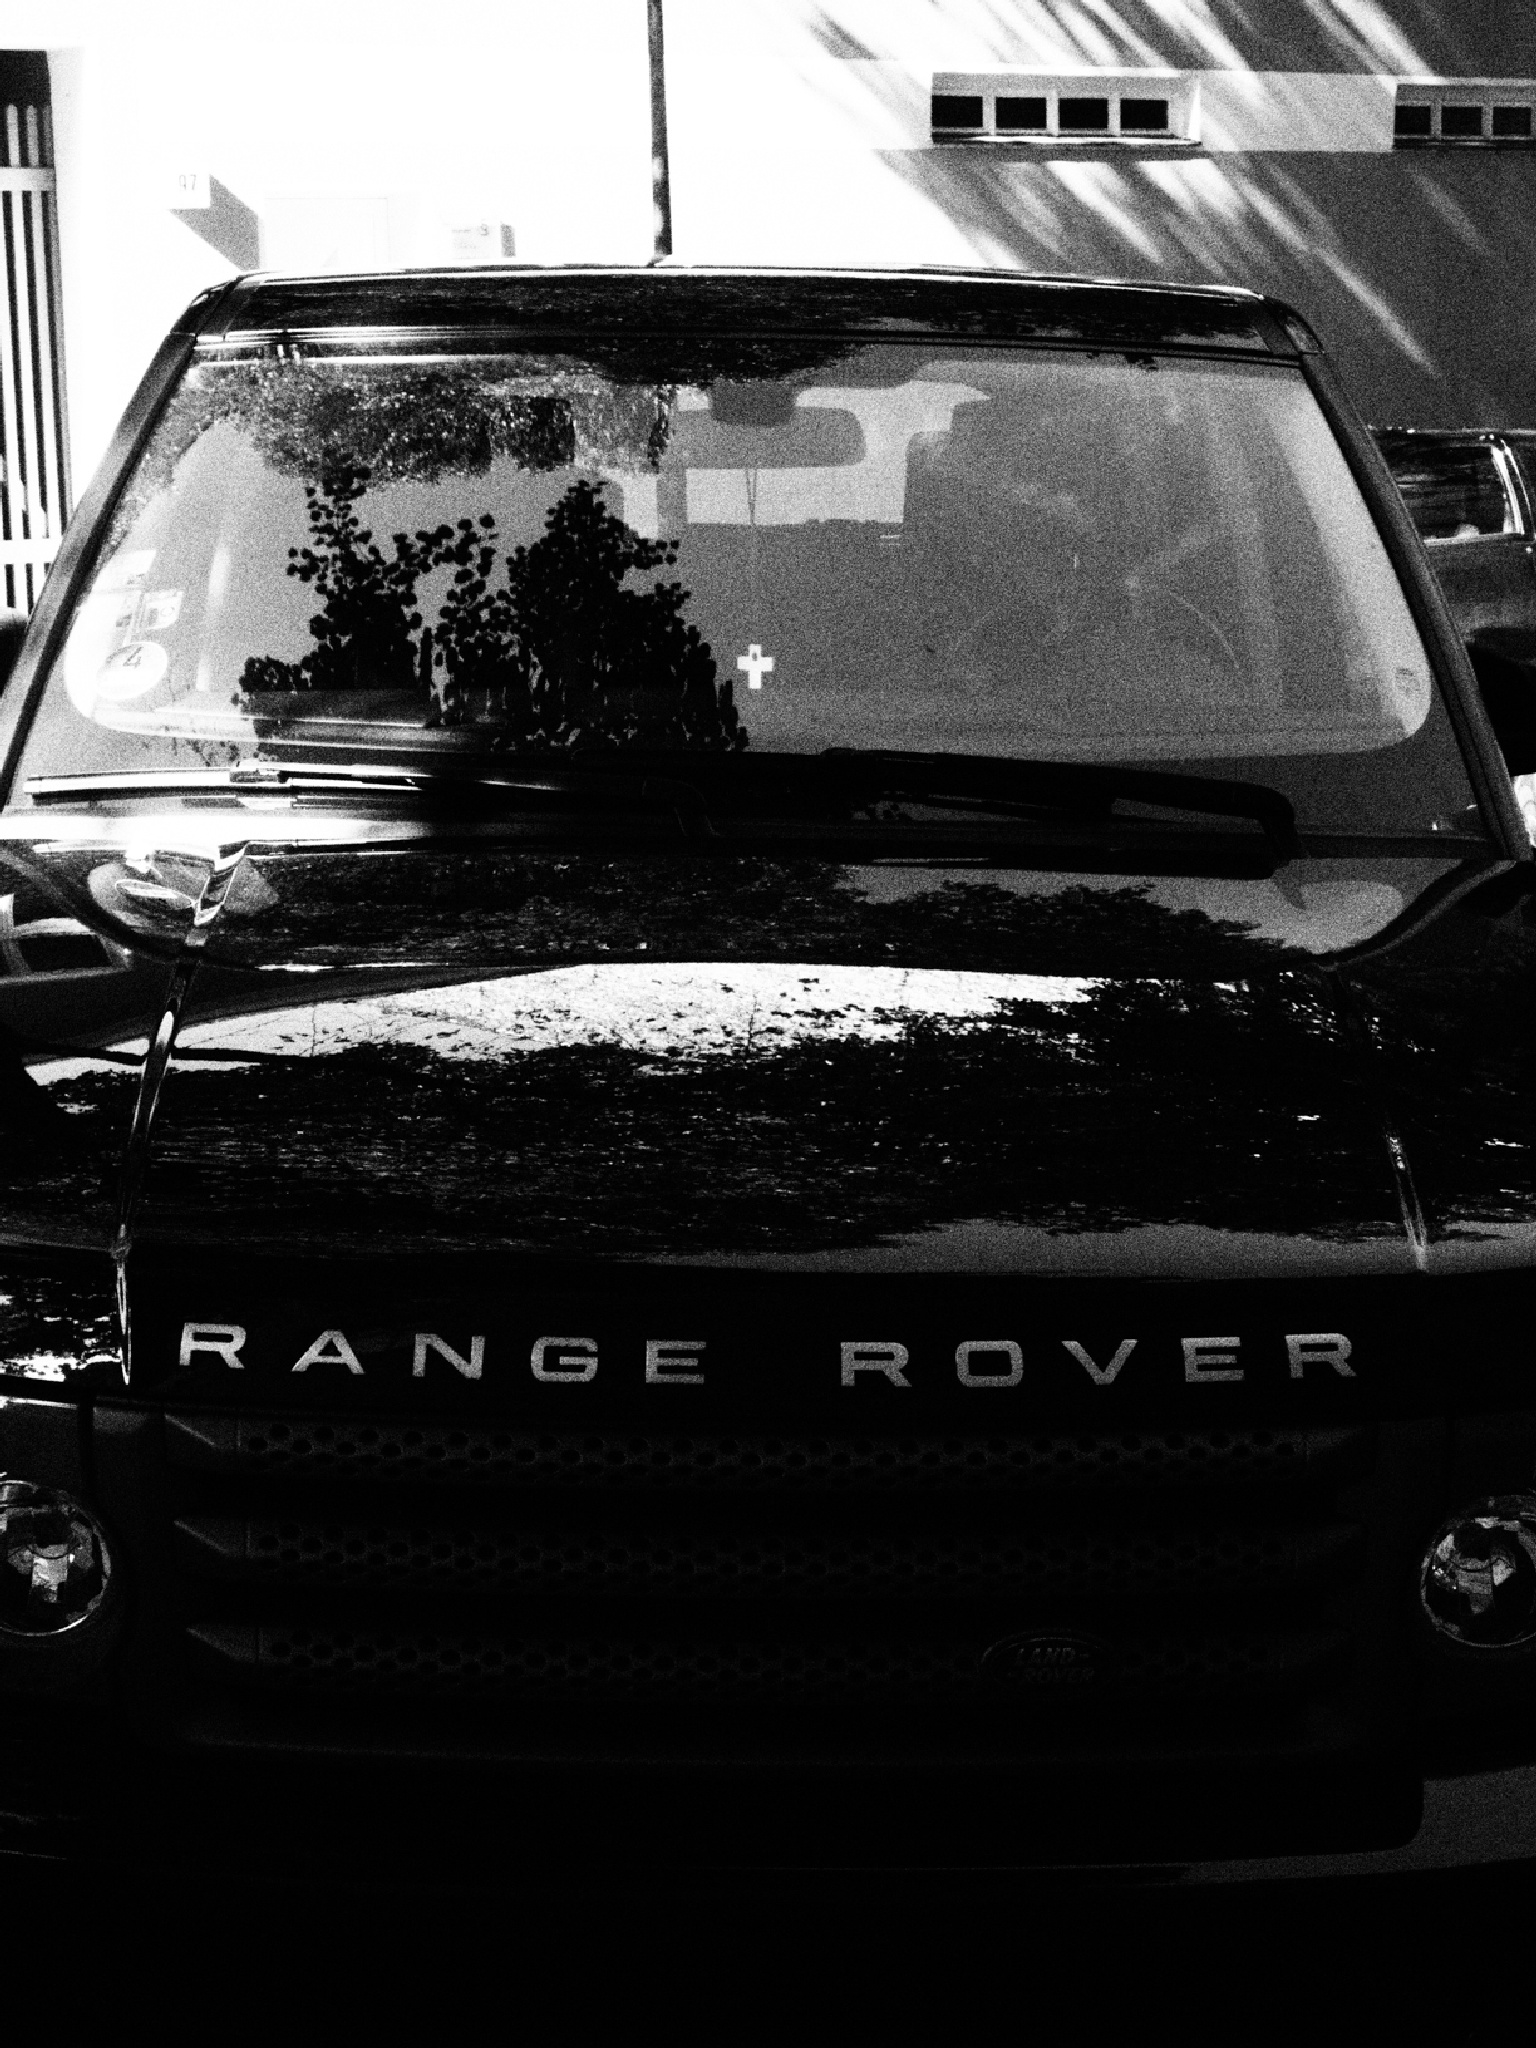 range rover and a cross by Cit Pelo